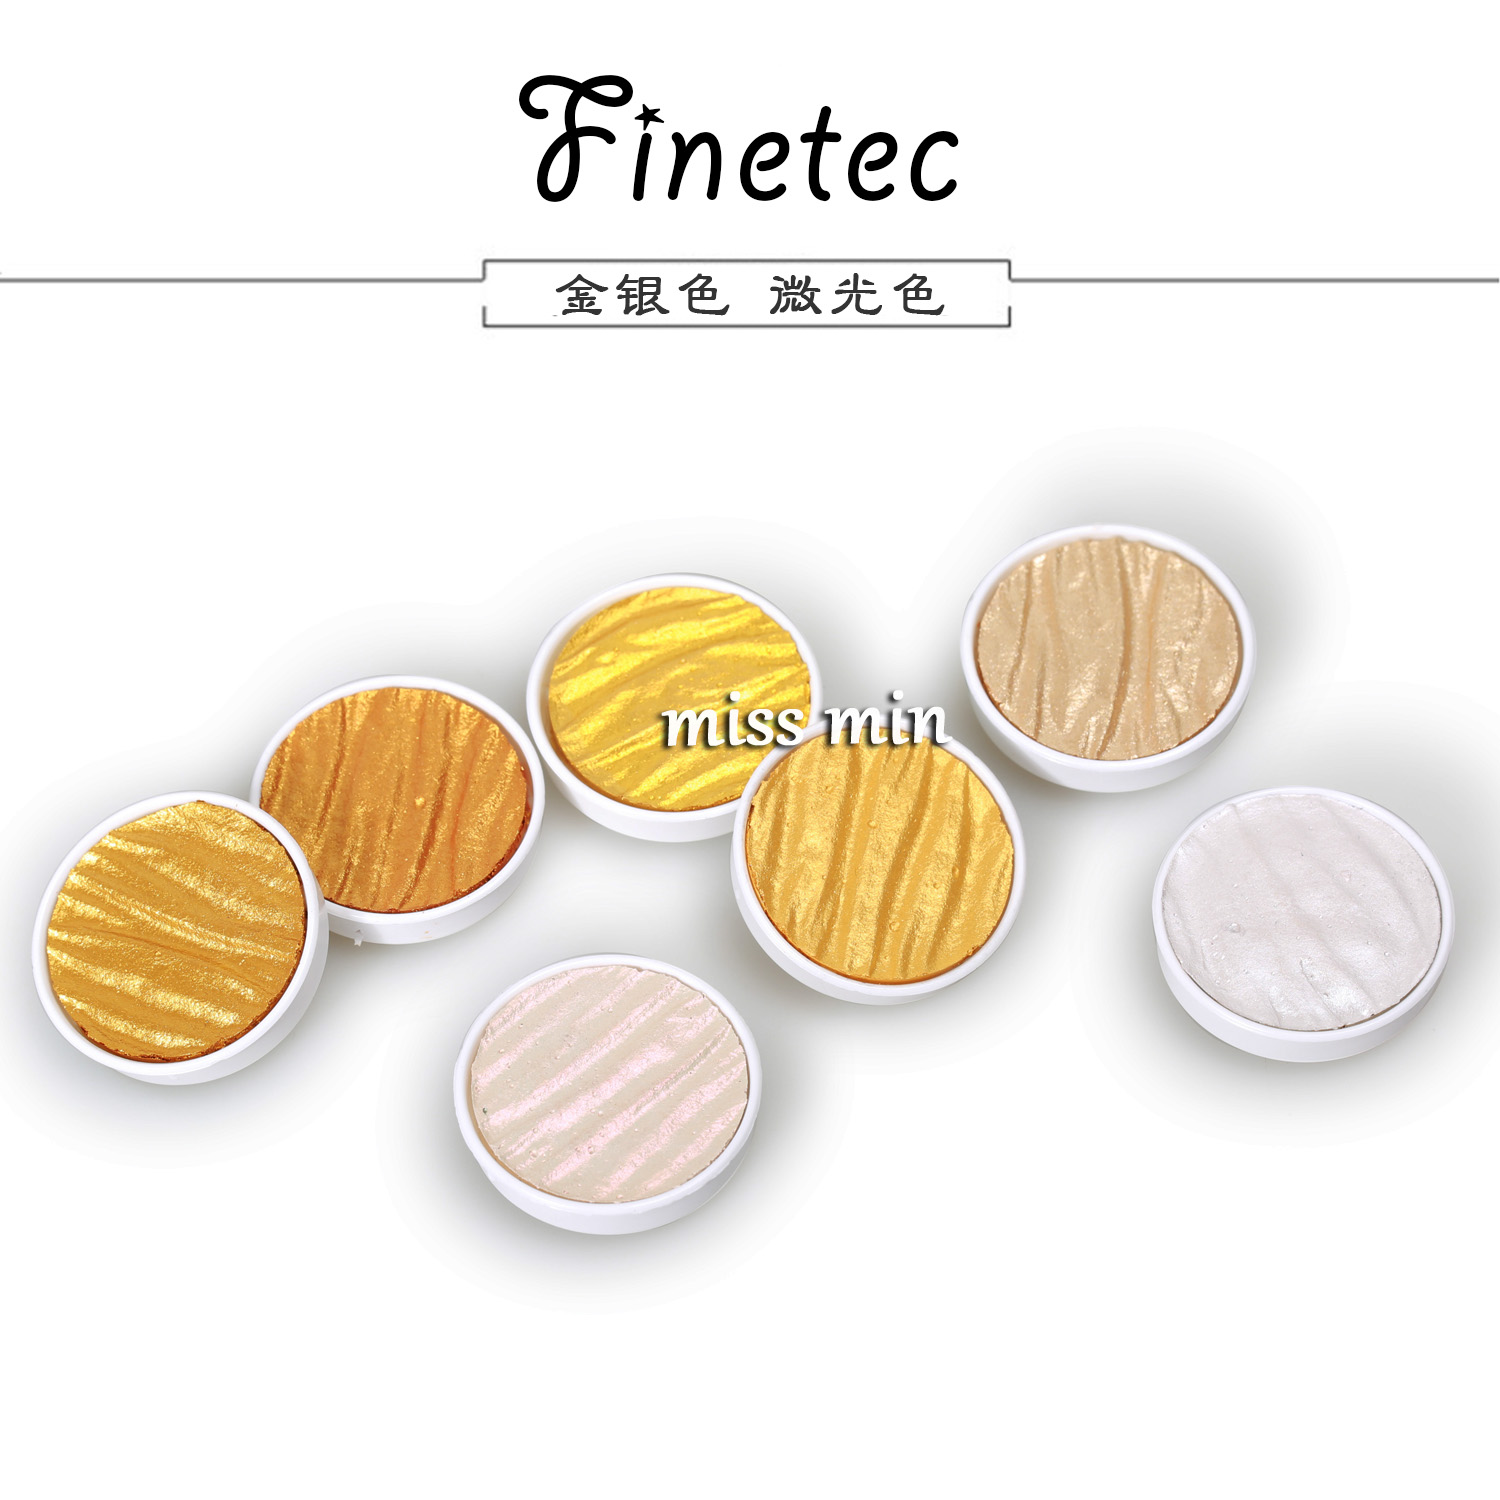 Finetec Pearlescent Aquarel Hand-made Solid Watercolor Pigment Waterverf Germany Acuarela Gold Paint Sulu Boya Gouache Verf